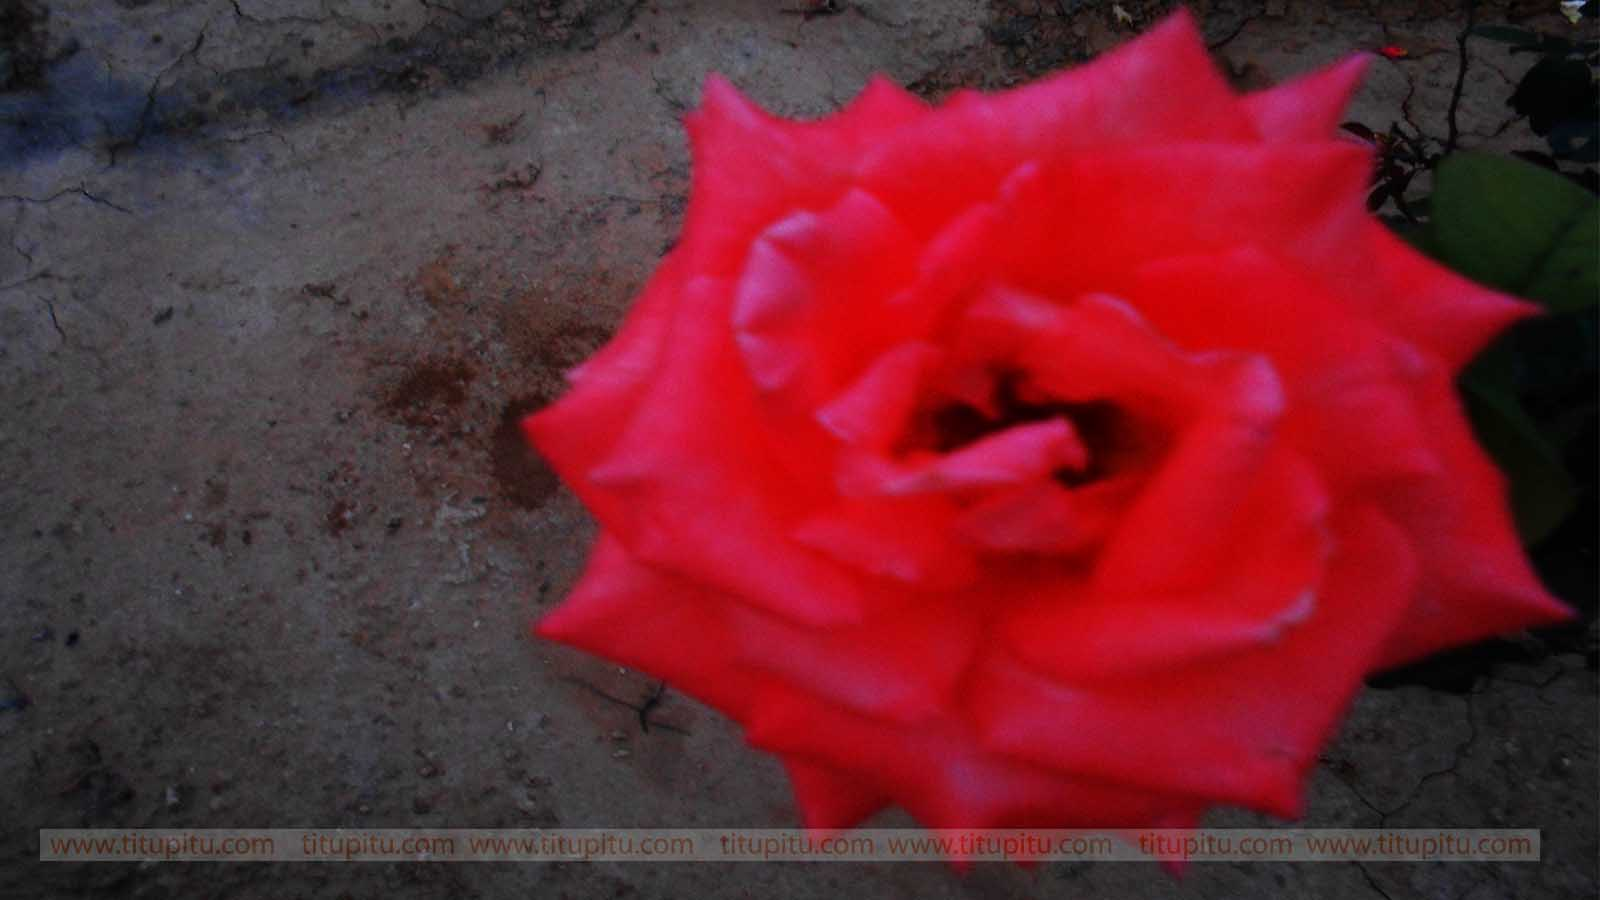 Flowers Images Download Free Hd Wallpapers Of Nature Haryanvi